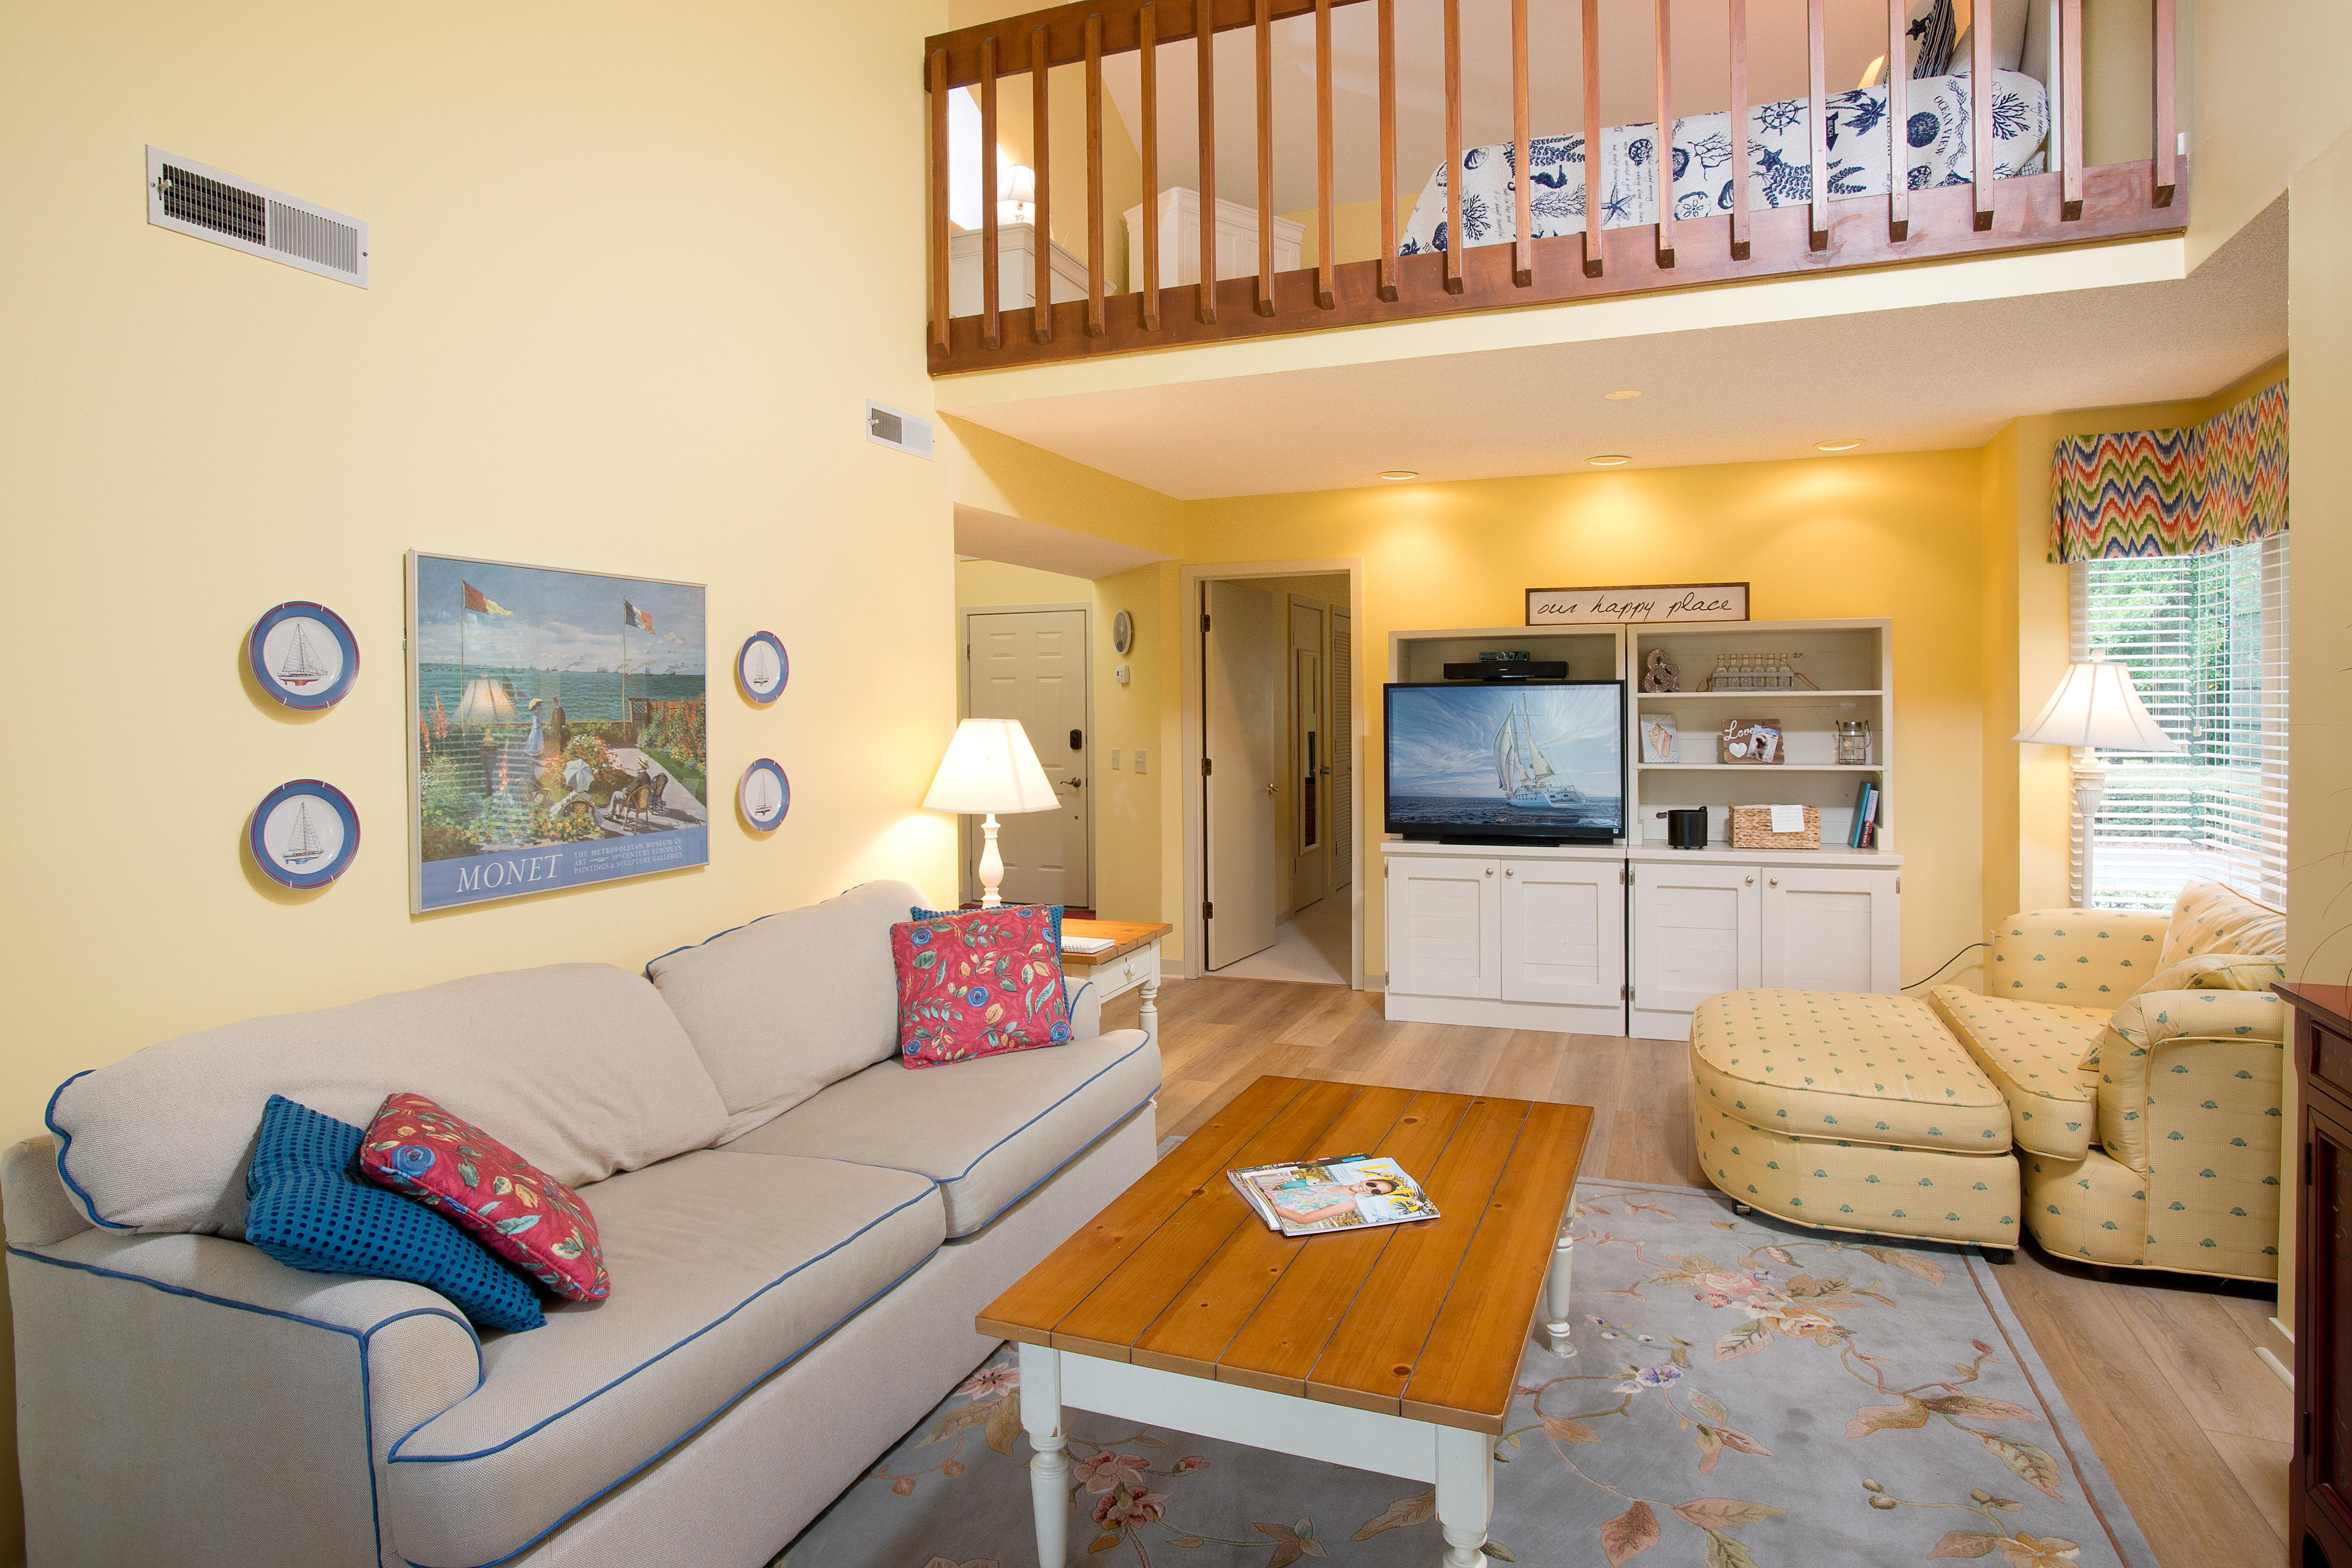 Welcome to Hilton Head! This condo is professionally managed by TurnKey Vacation Rentals.